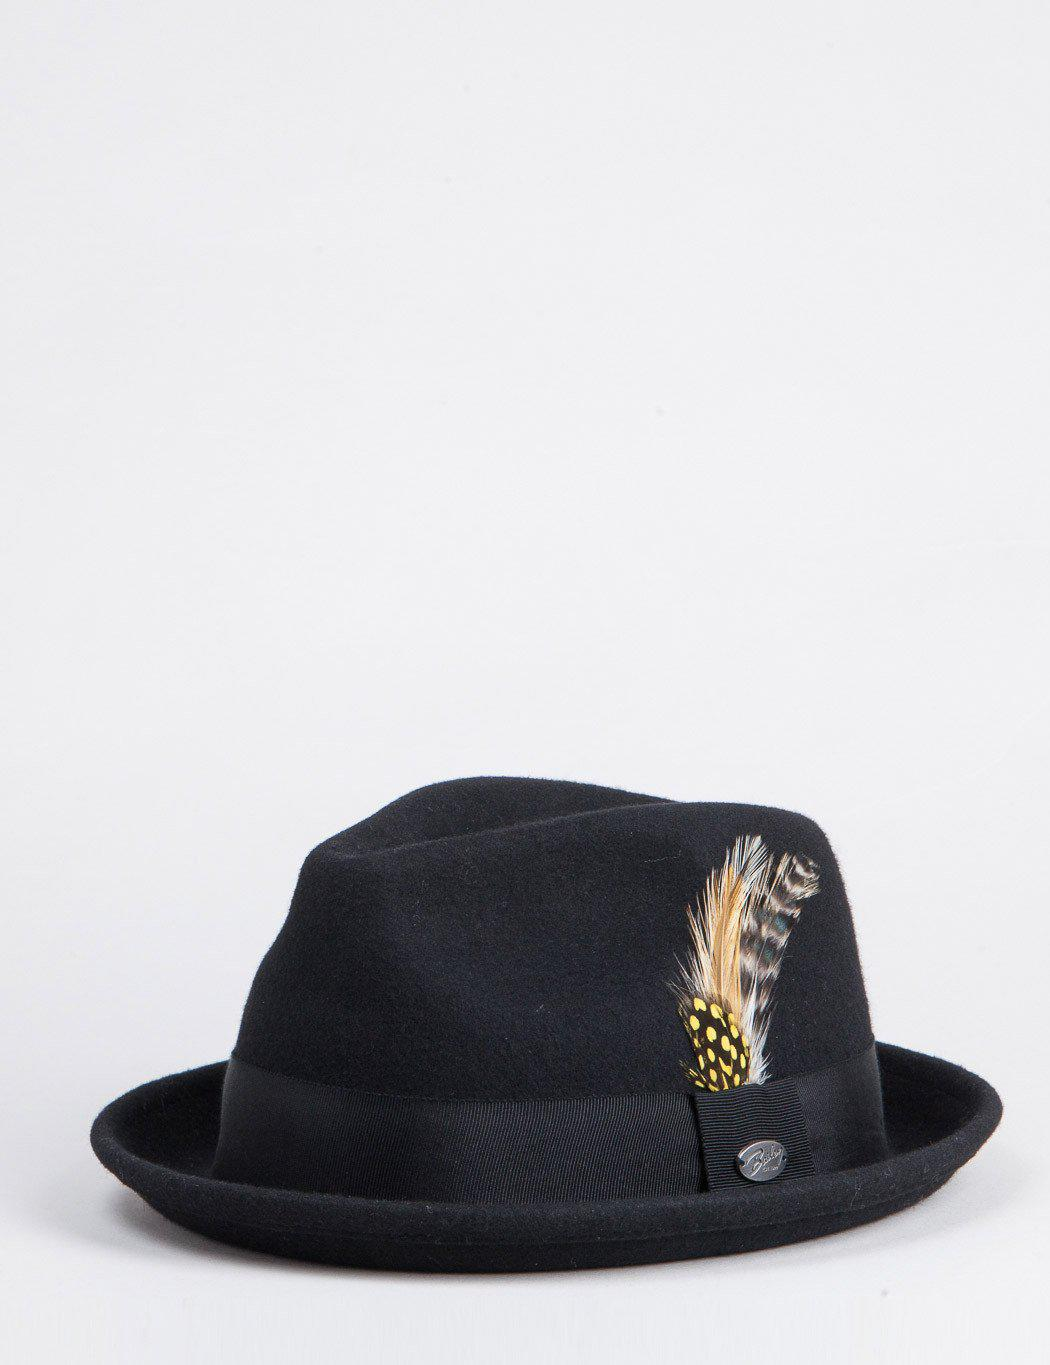 b0c3918d Bailey of Hollywood Bailey Cloyd Trilby Hat in Black for Men - Lyst